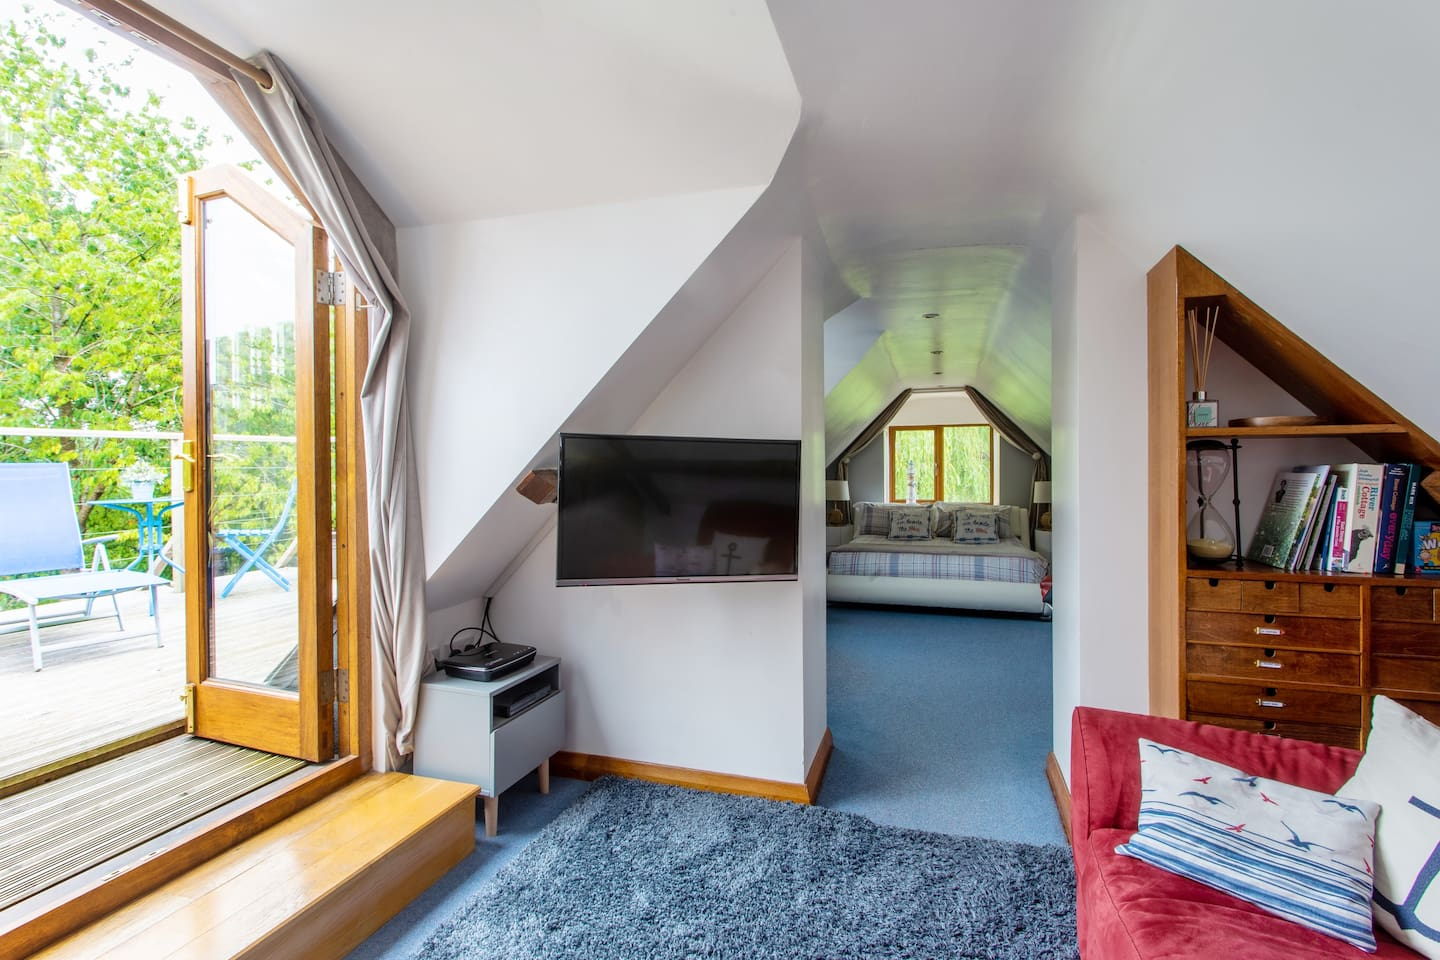 Light and airy accommodation with private balcony and triple aspect views.